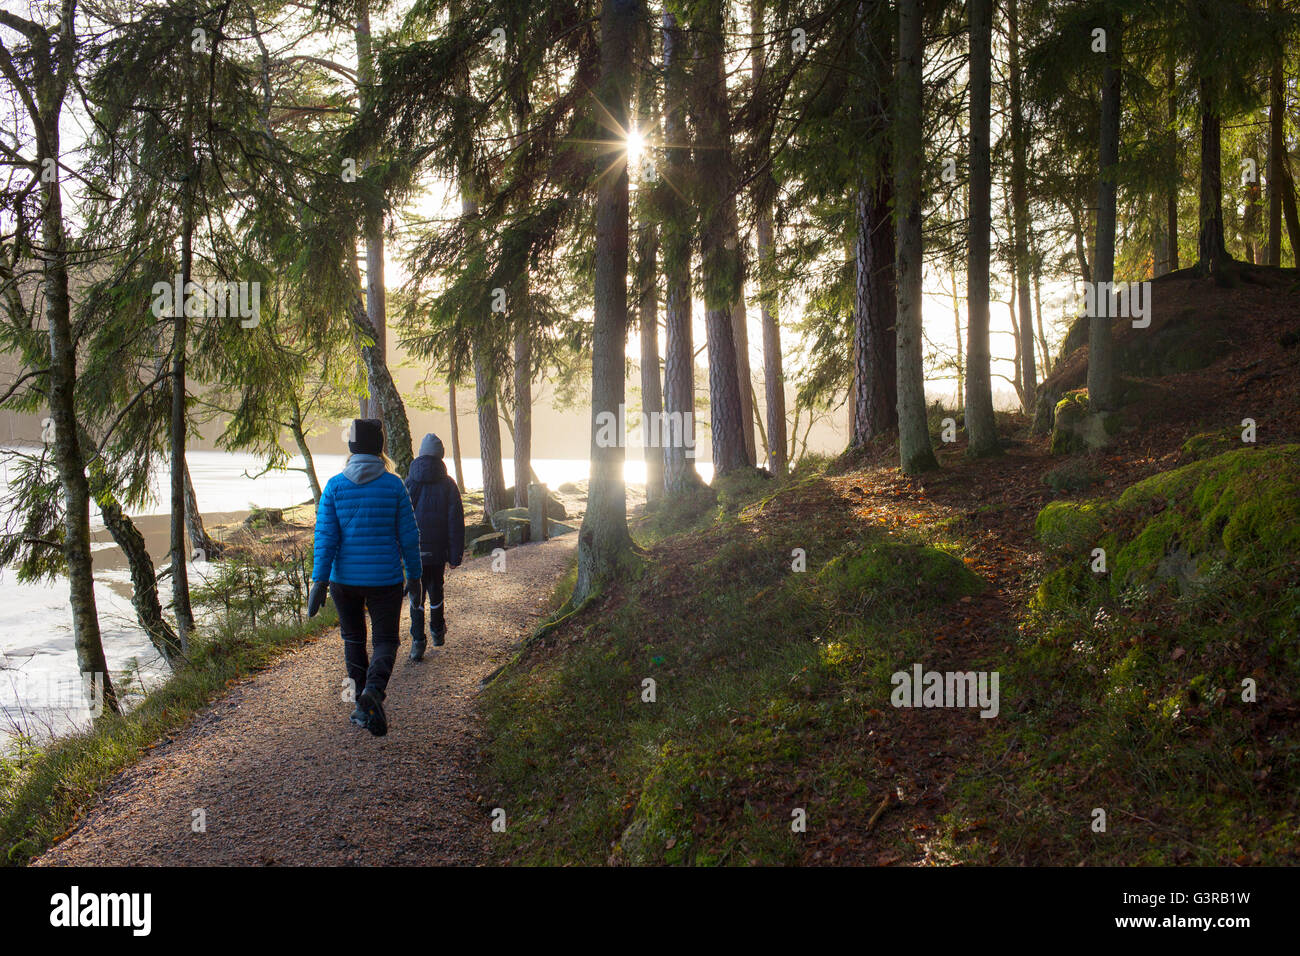 Sweden, Vastergotland, Lerum, Stamsjon, Mother and son (12-13) walking in forest - Stock Image